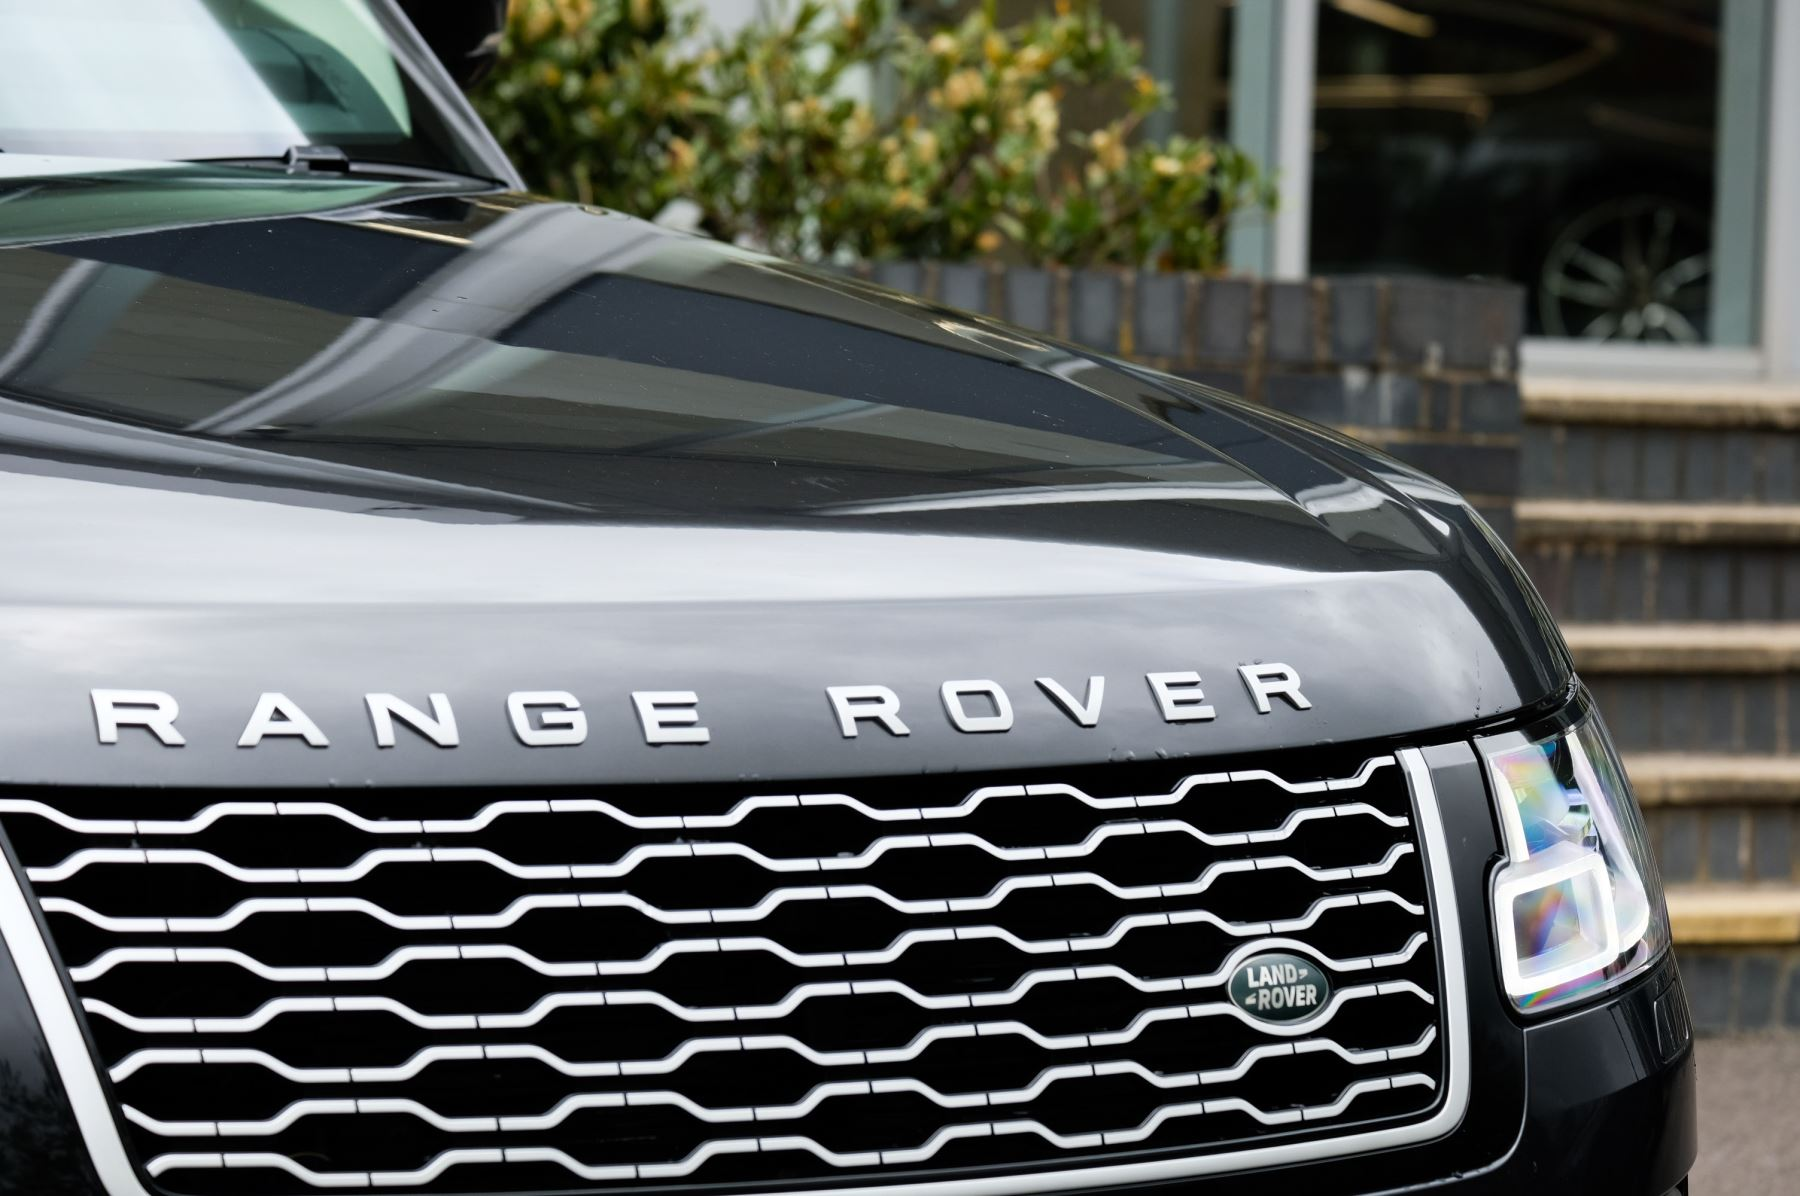 Land Rover Range Rover 3.0 SDV6 Vogue SE - Panoramic Roof - Privacy Glass - 21 inch Alloys image 6